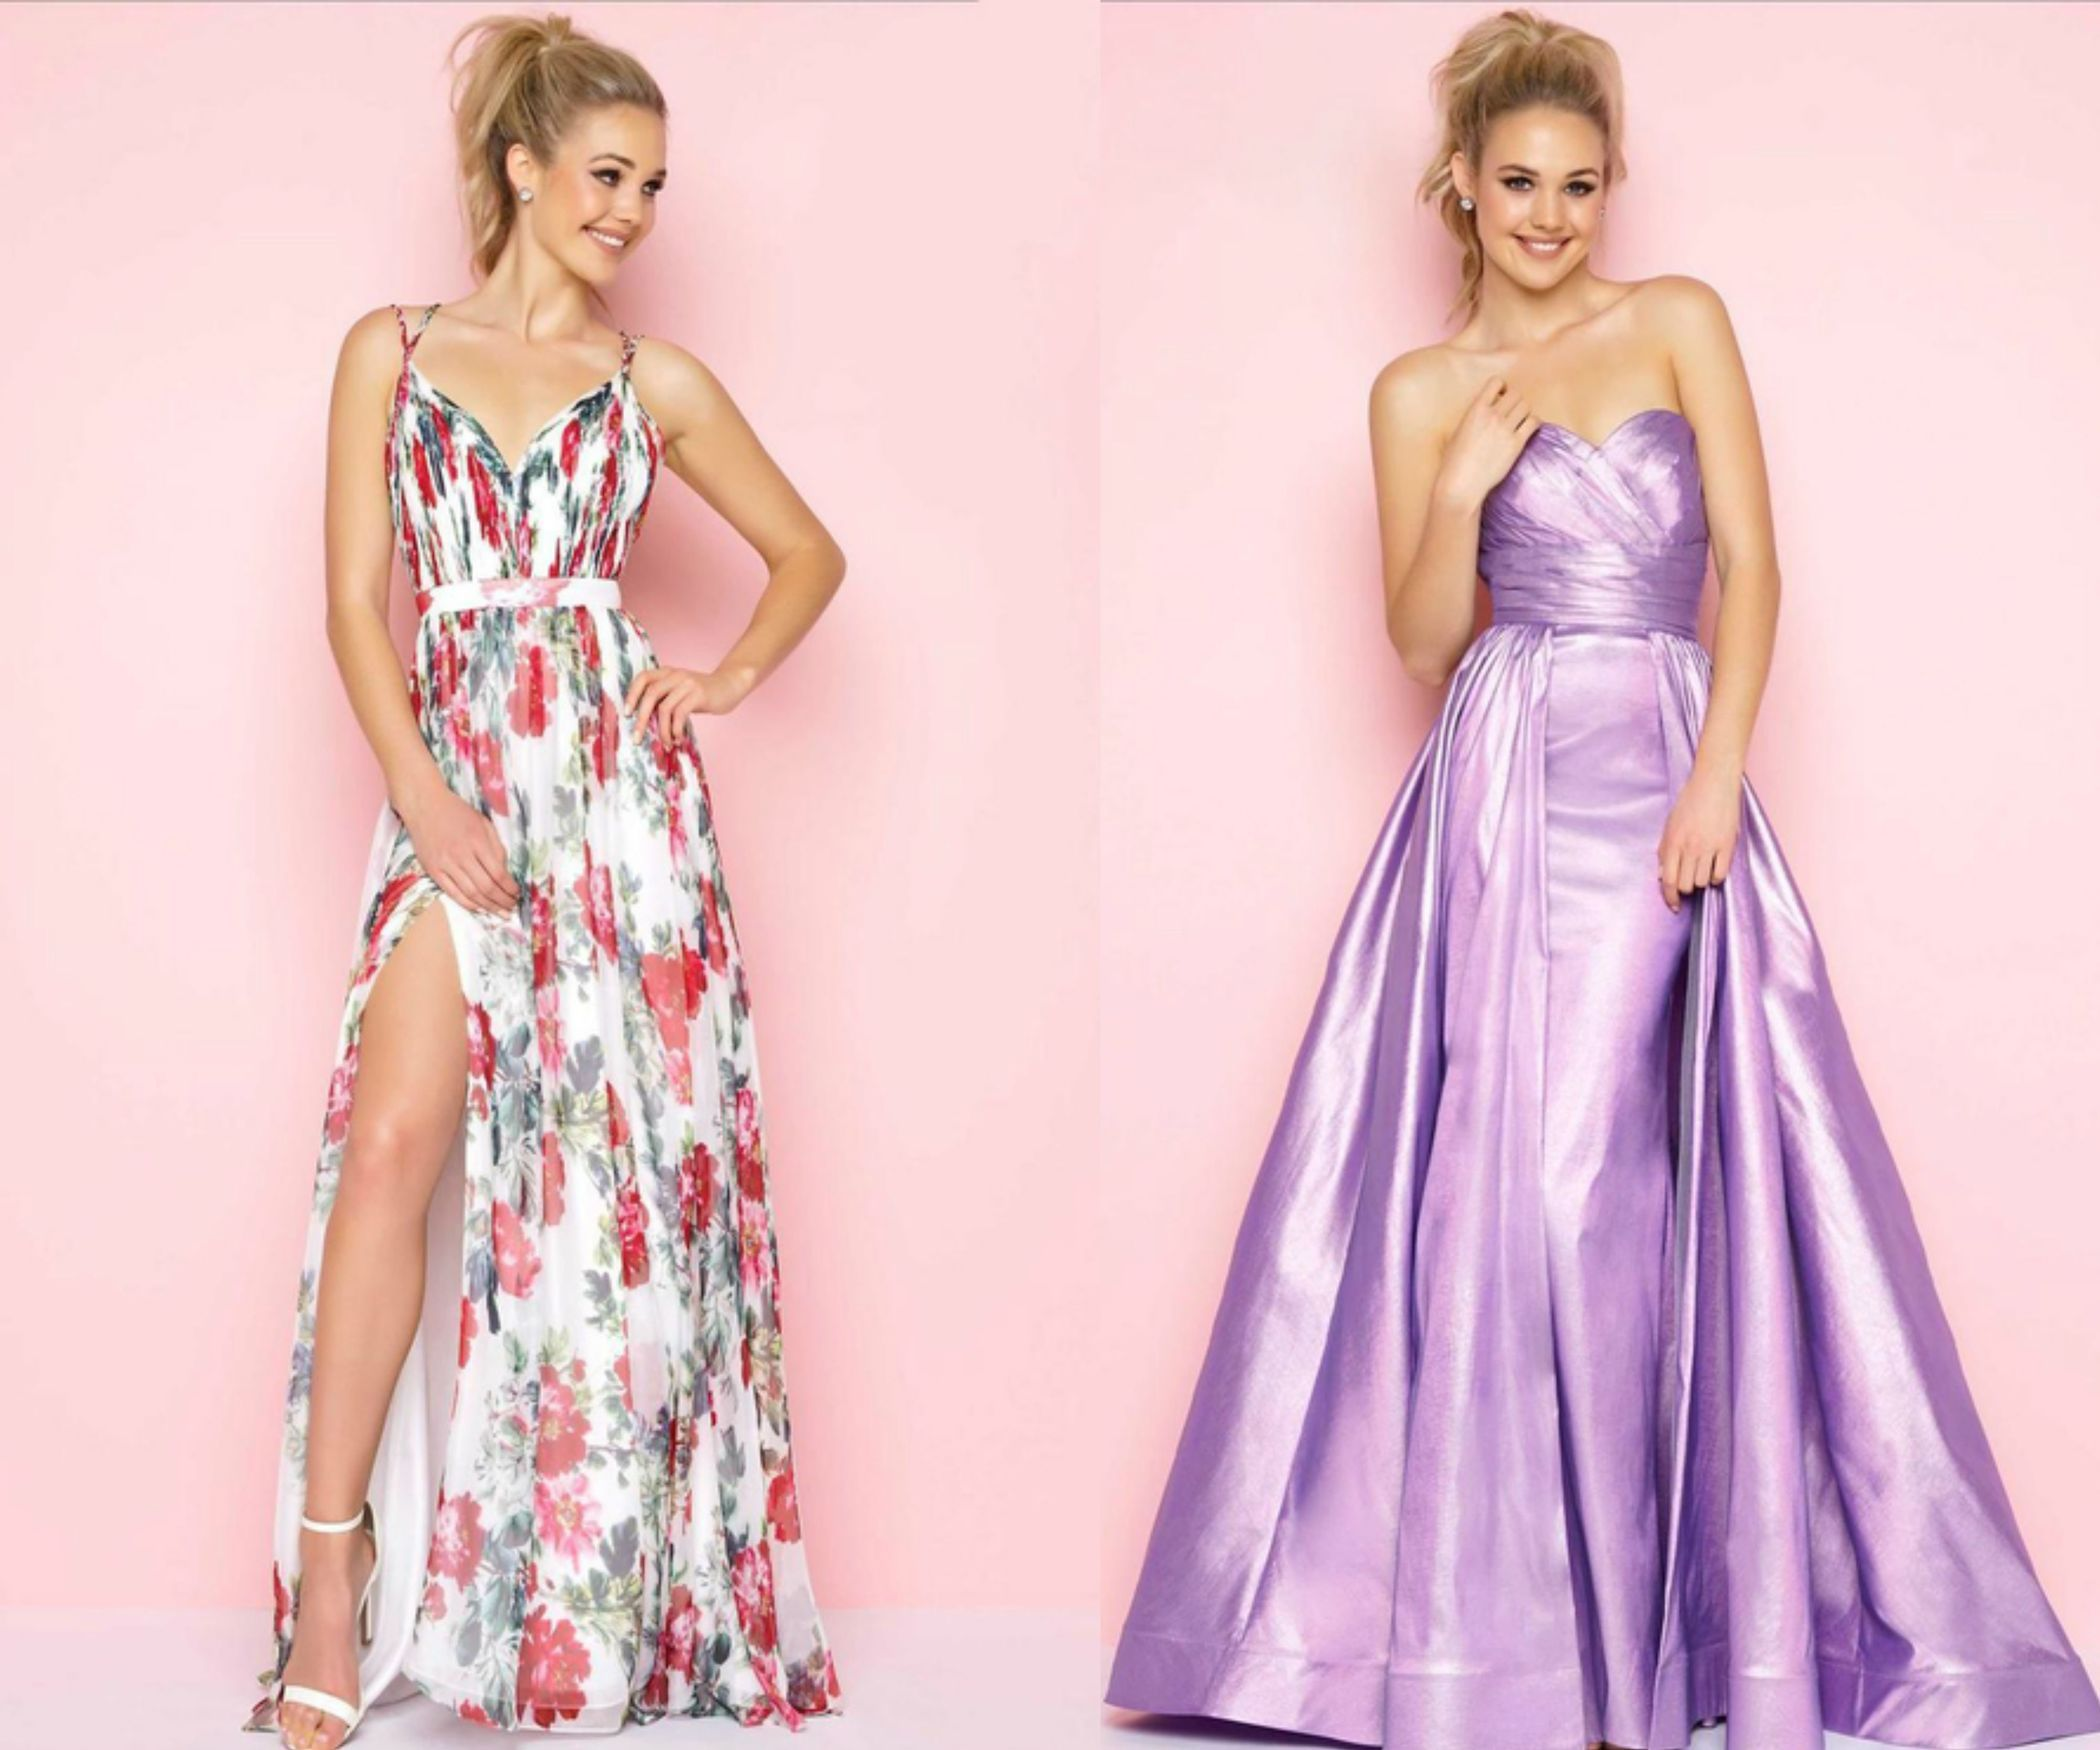 Choosing the Best Prom Dresses for Your Body Type